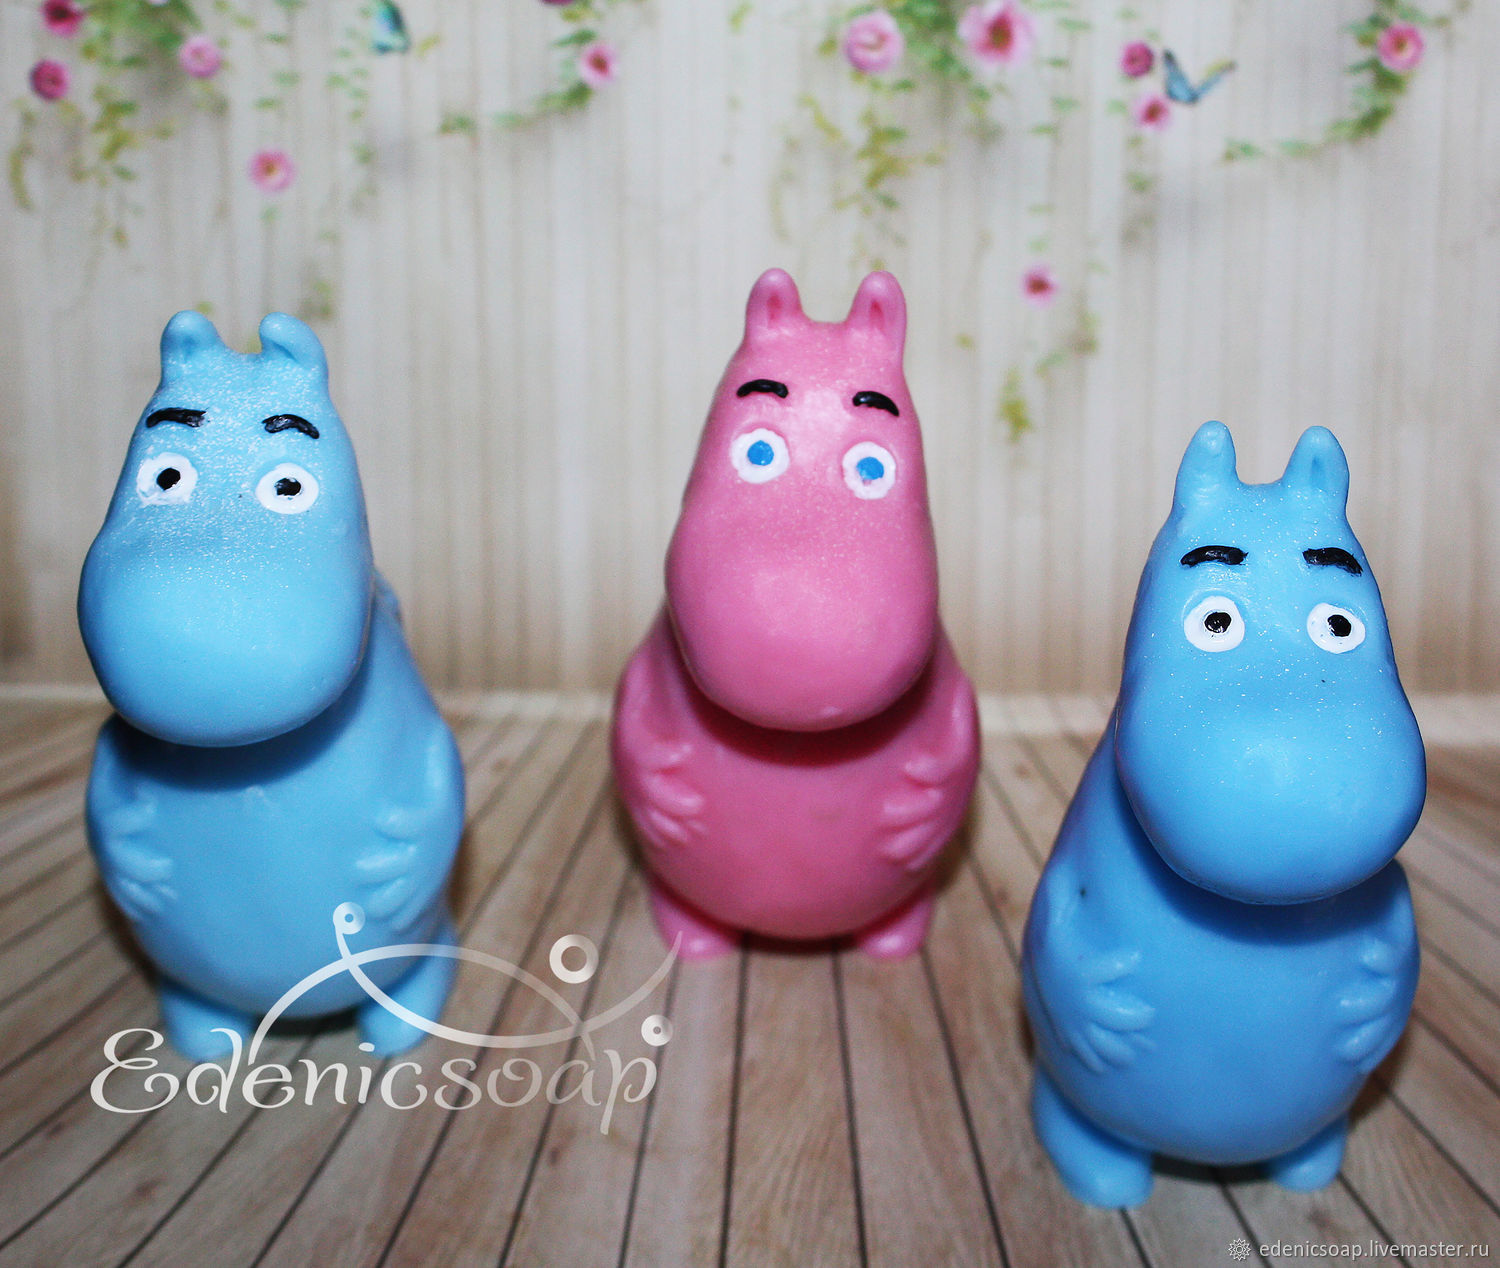 Moomin Figure Set amici